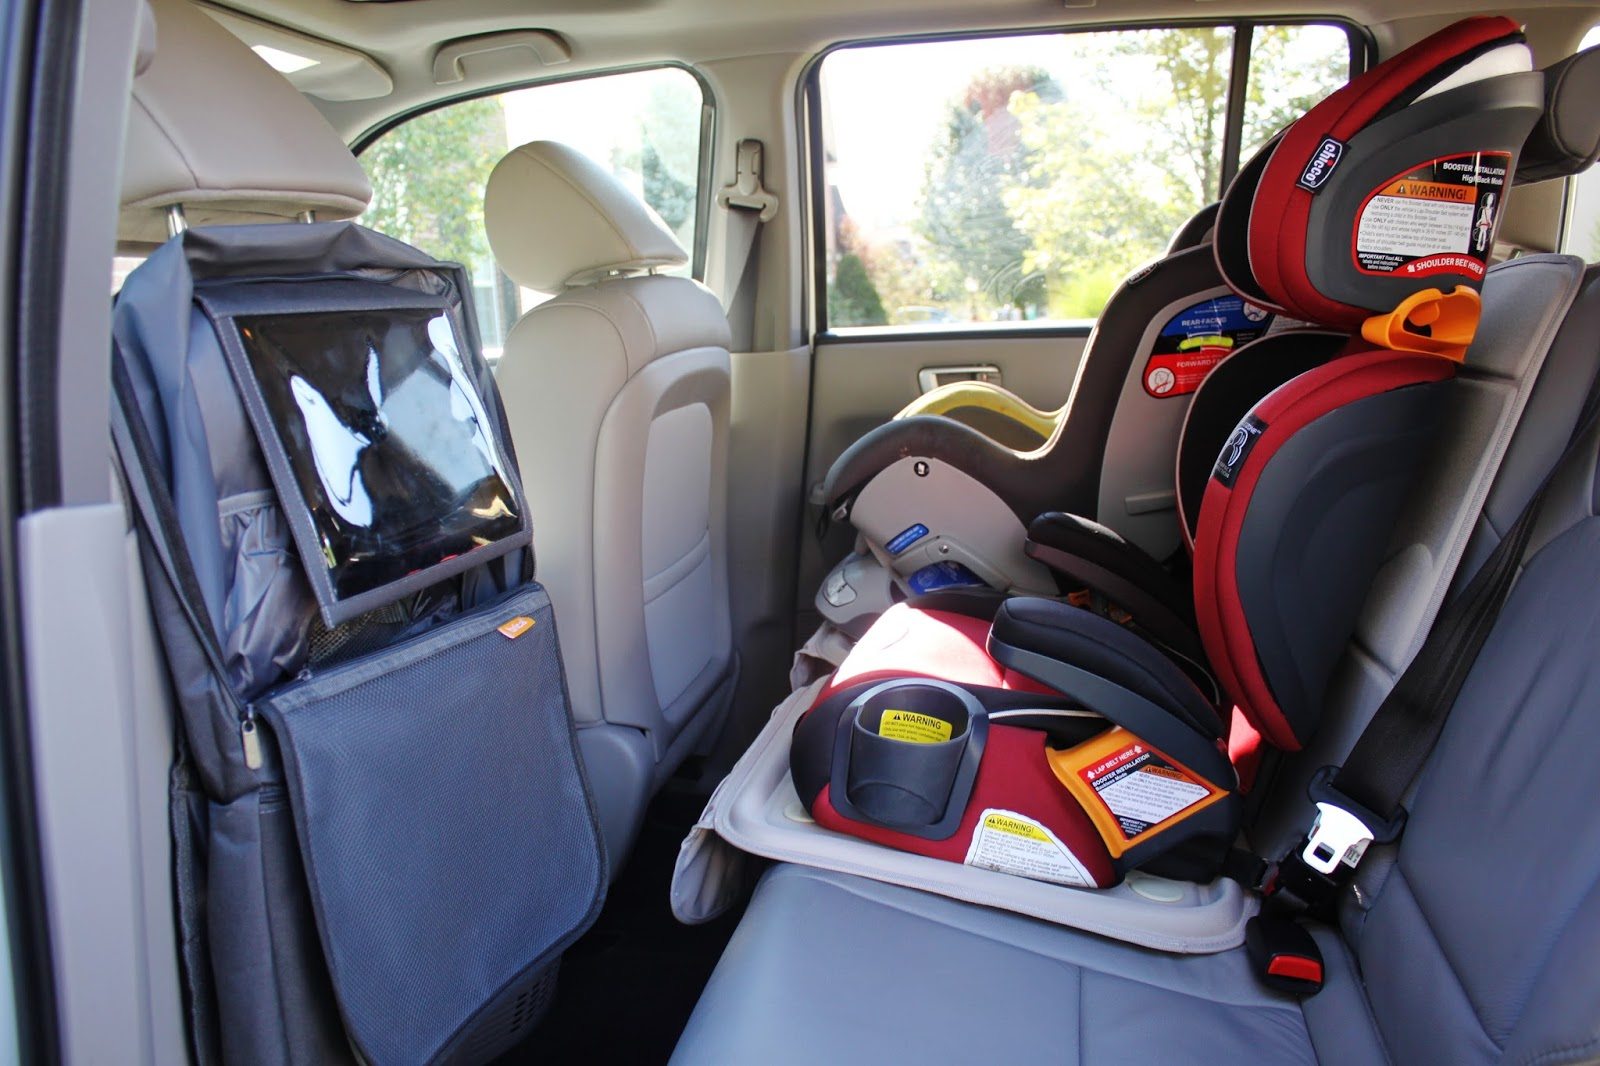 My Simple Modest Chic Tips To Keep Your Car Clean Amp Organized